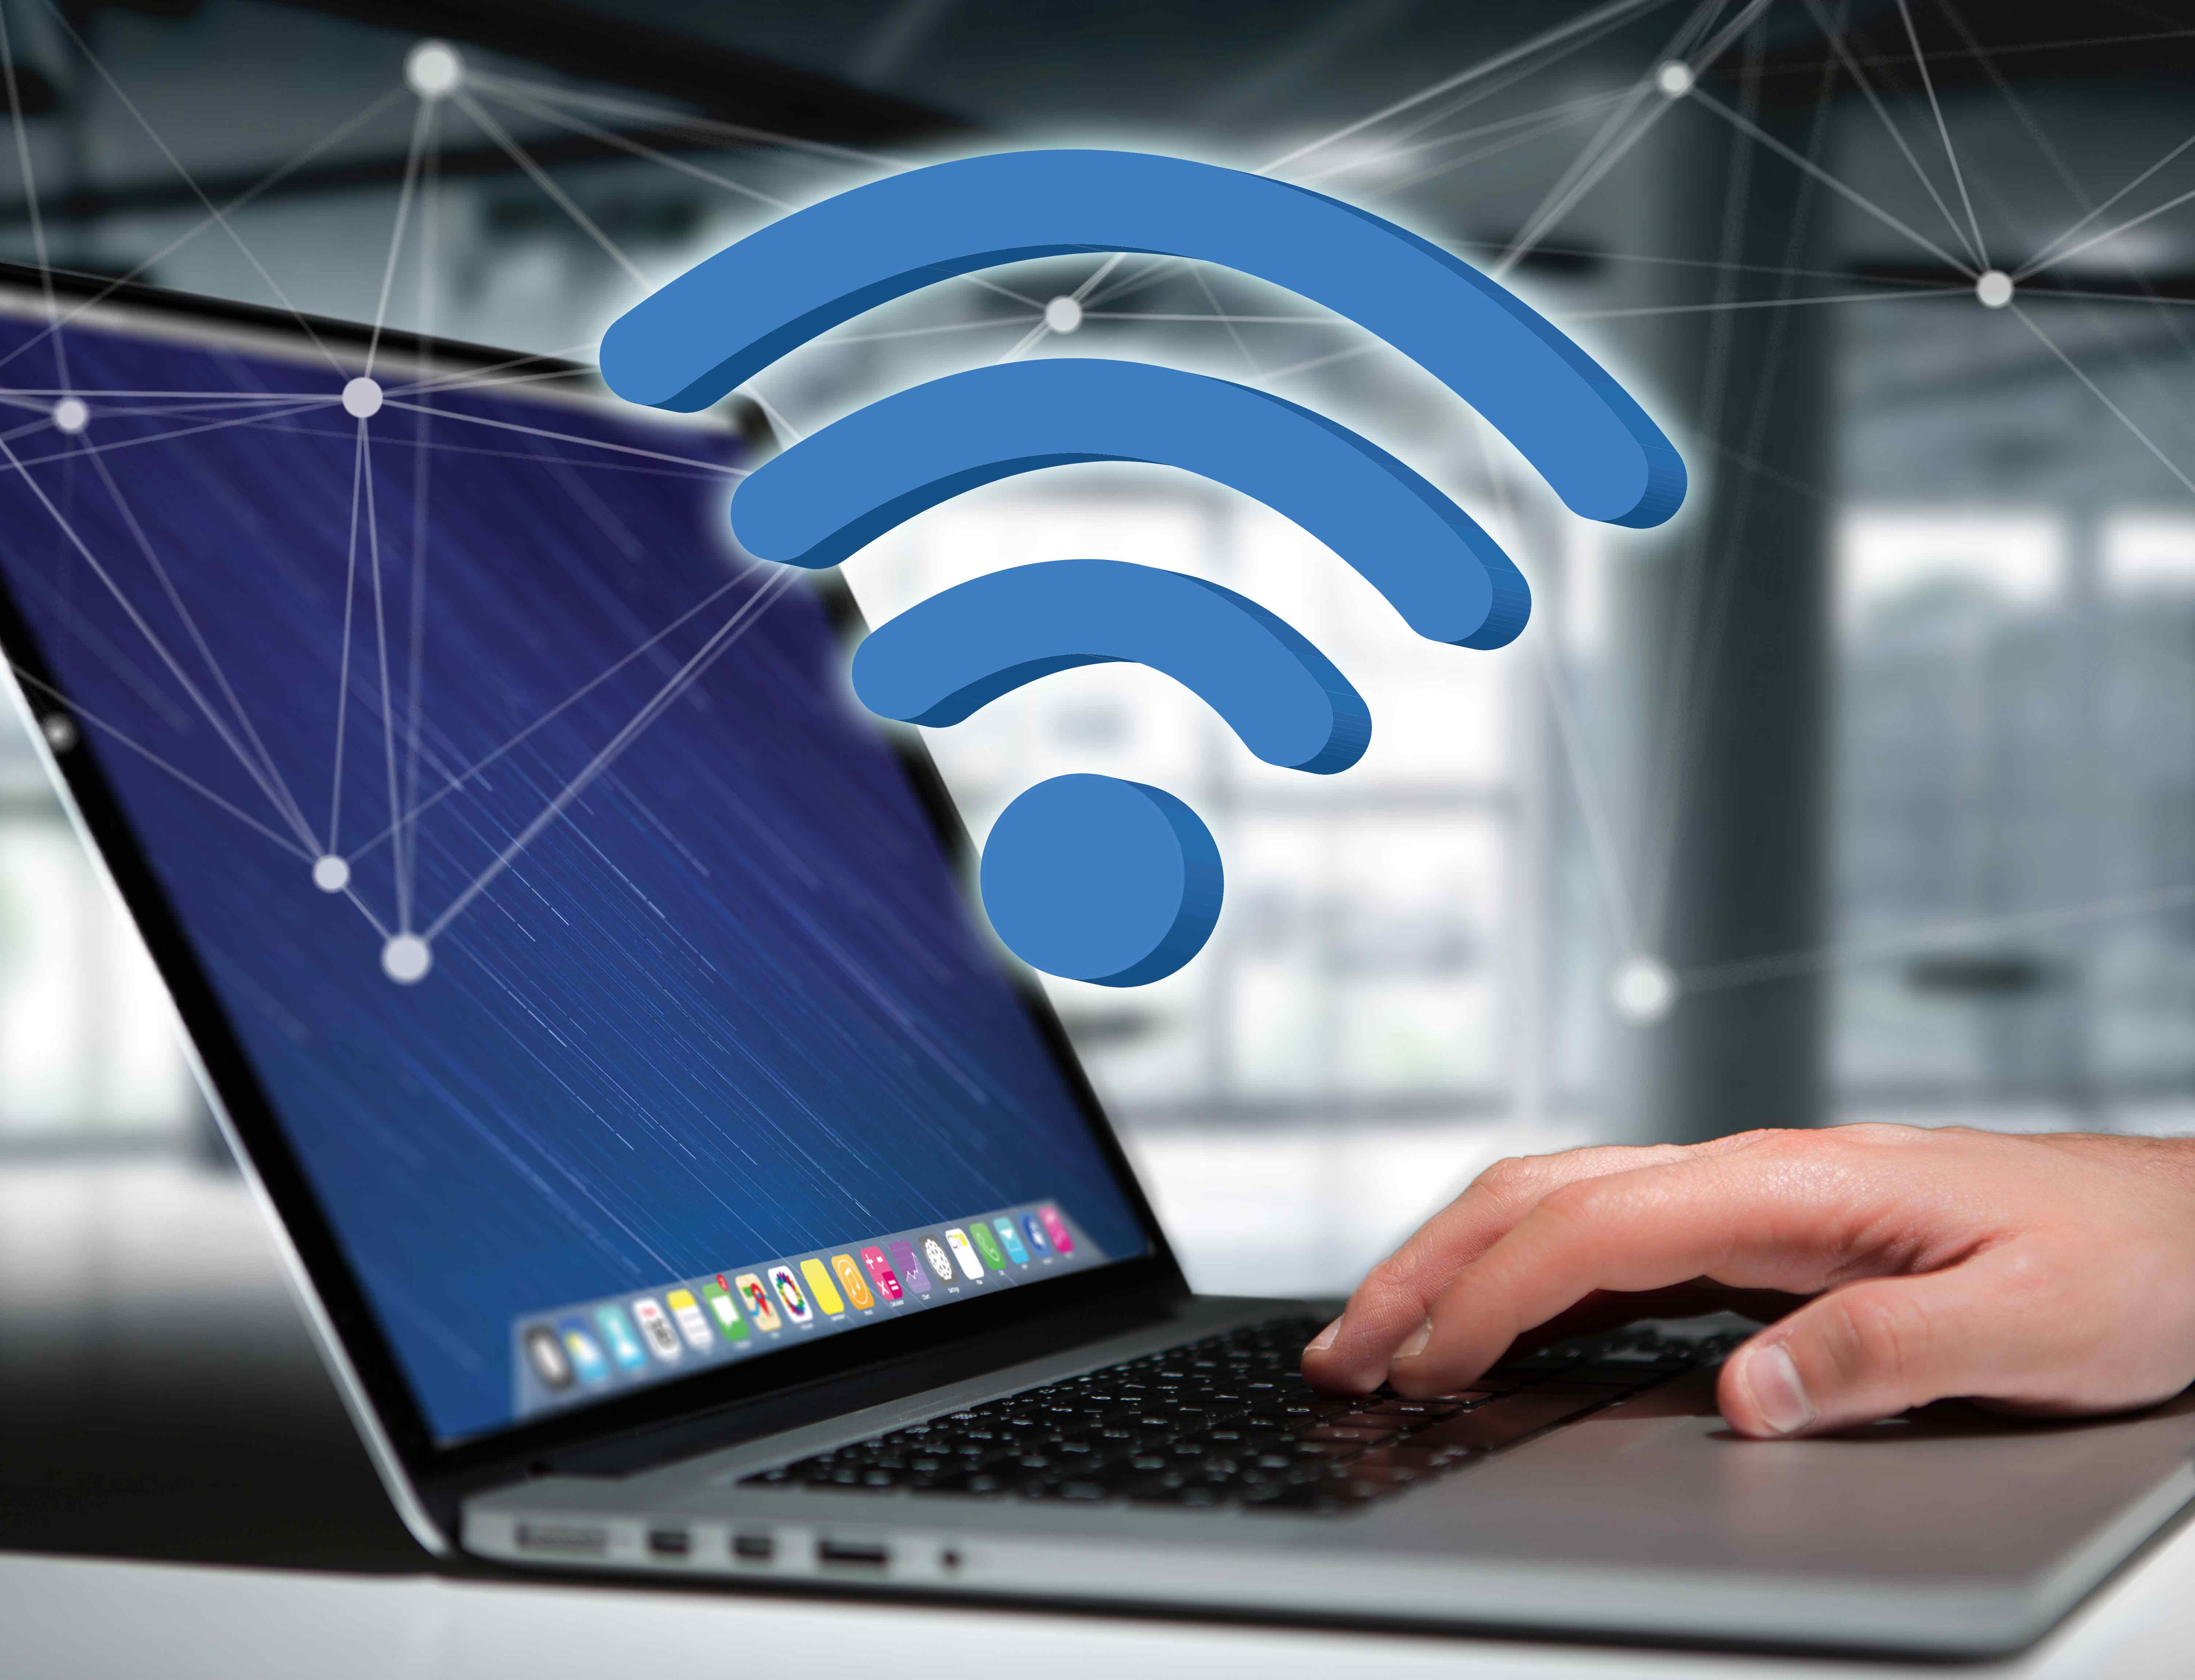 Laptop device connected to WiFi